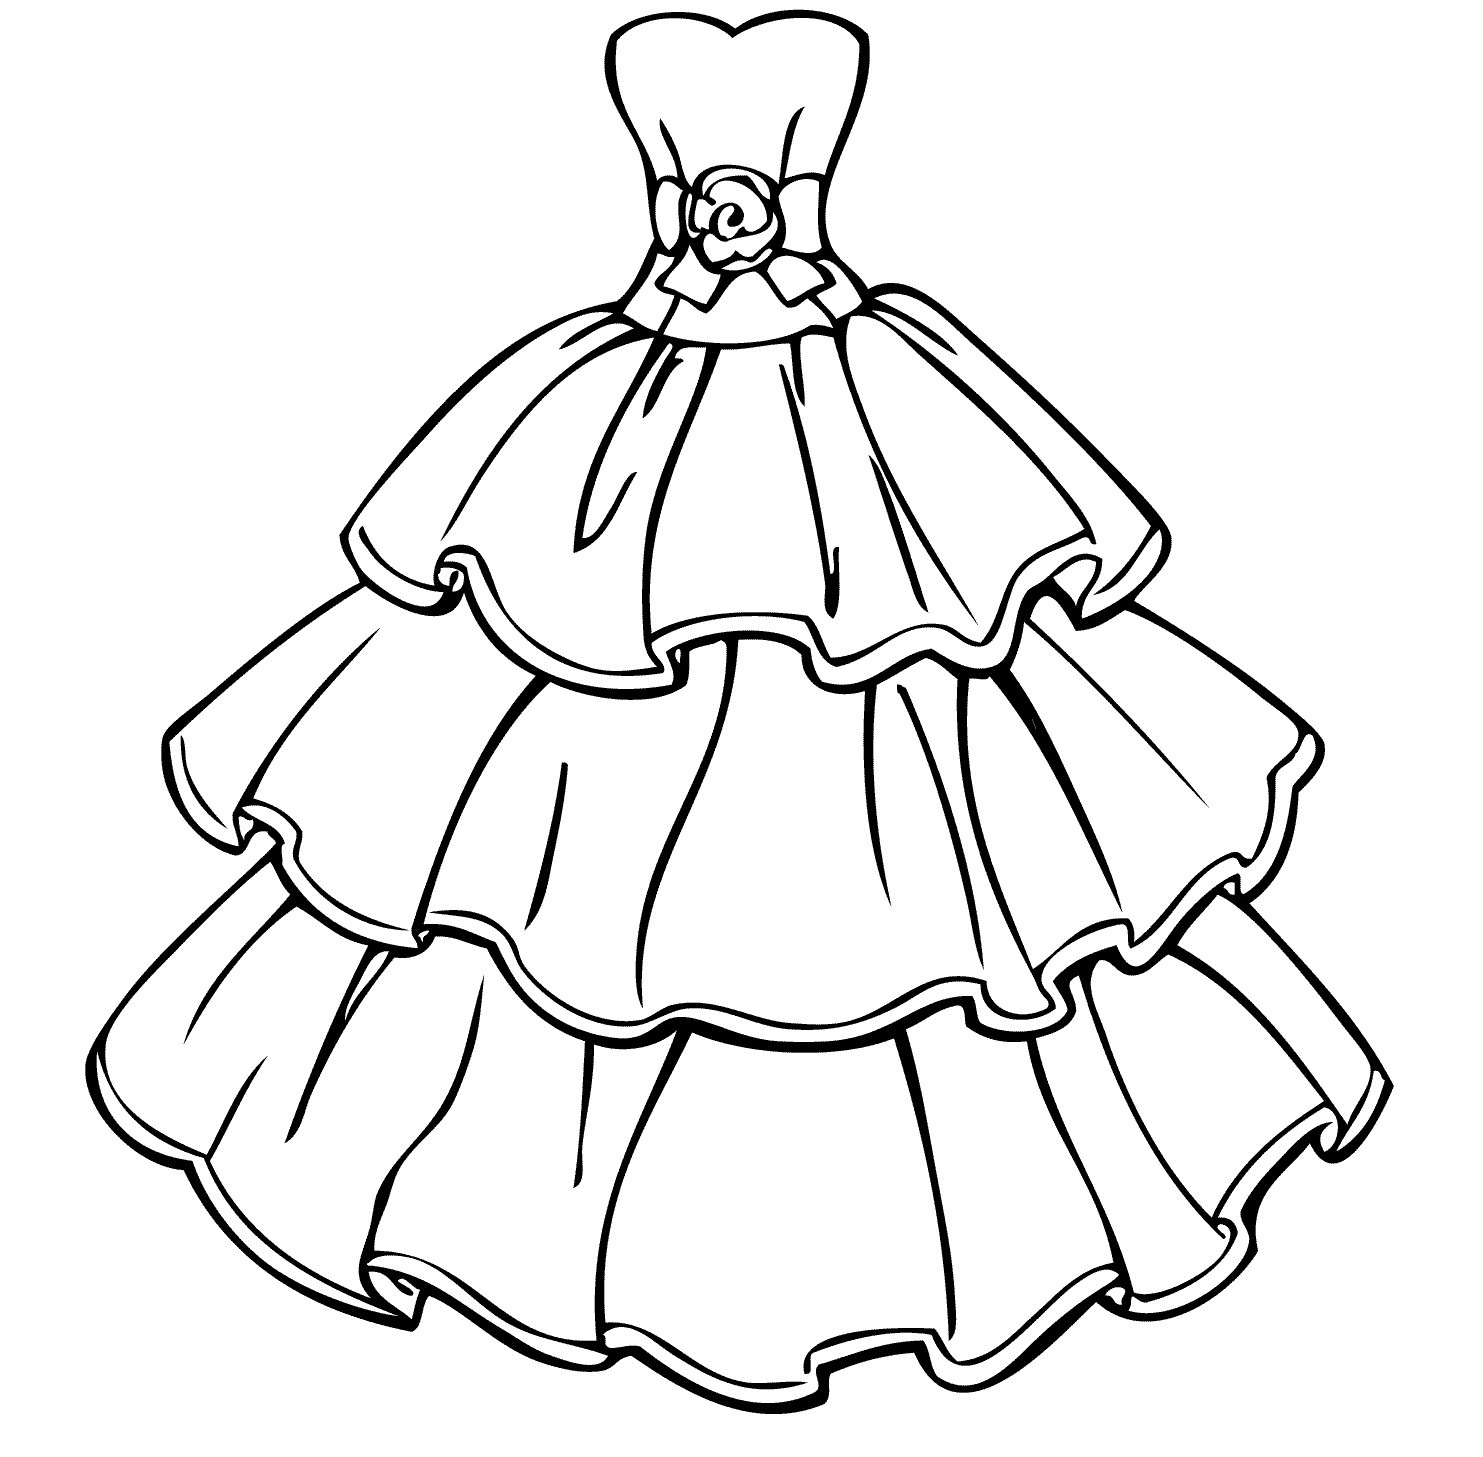 1483x1457 Coloring Pages For Girls Dresses Download Coloring For Kids